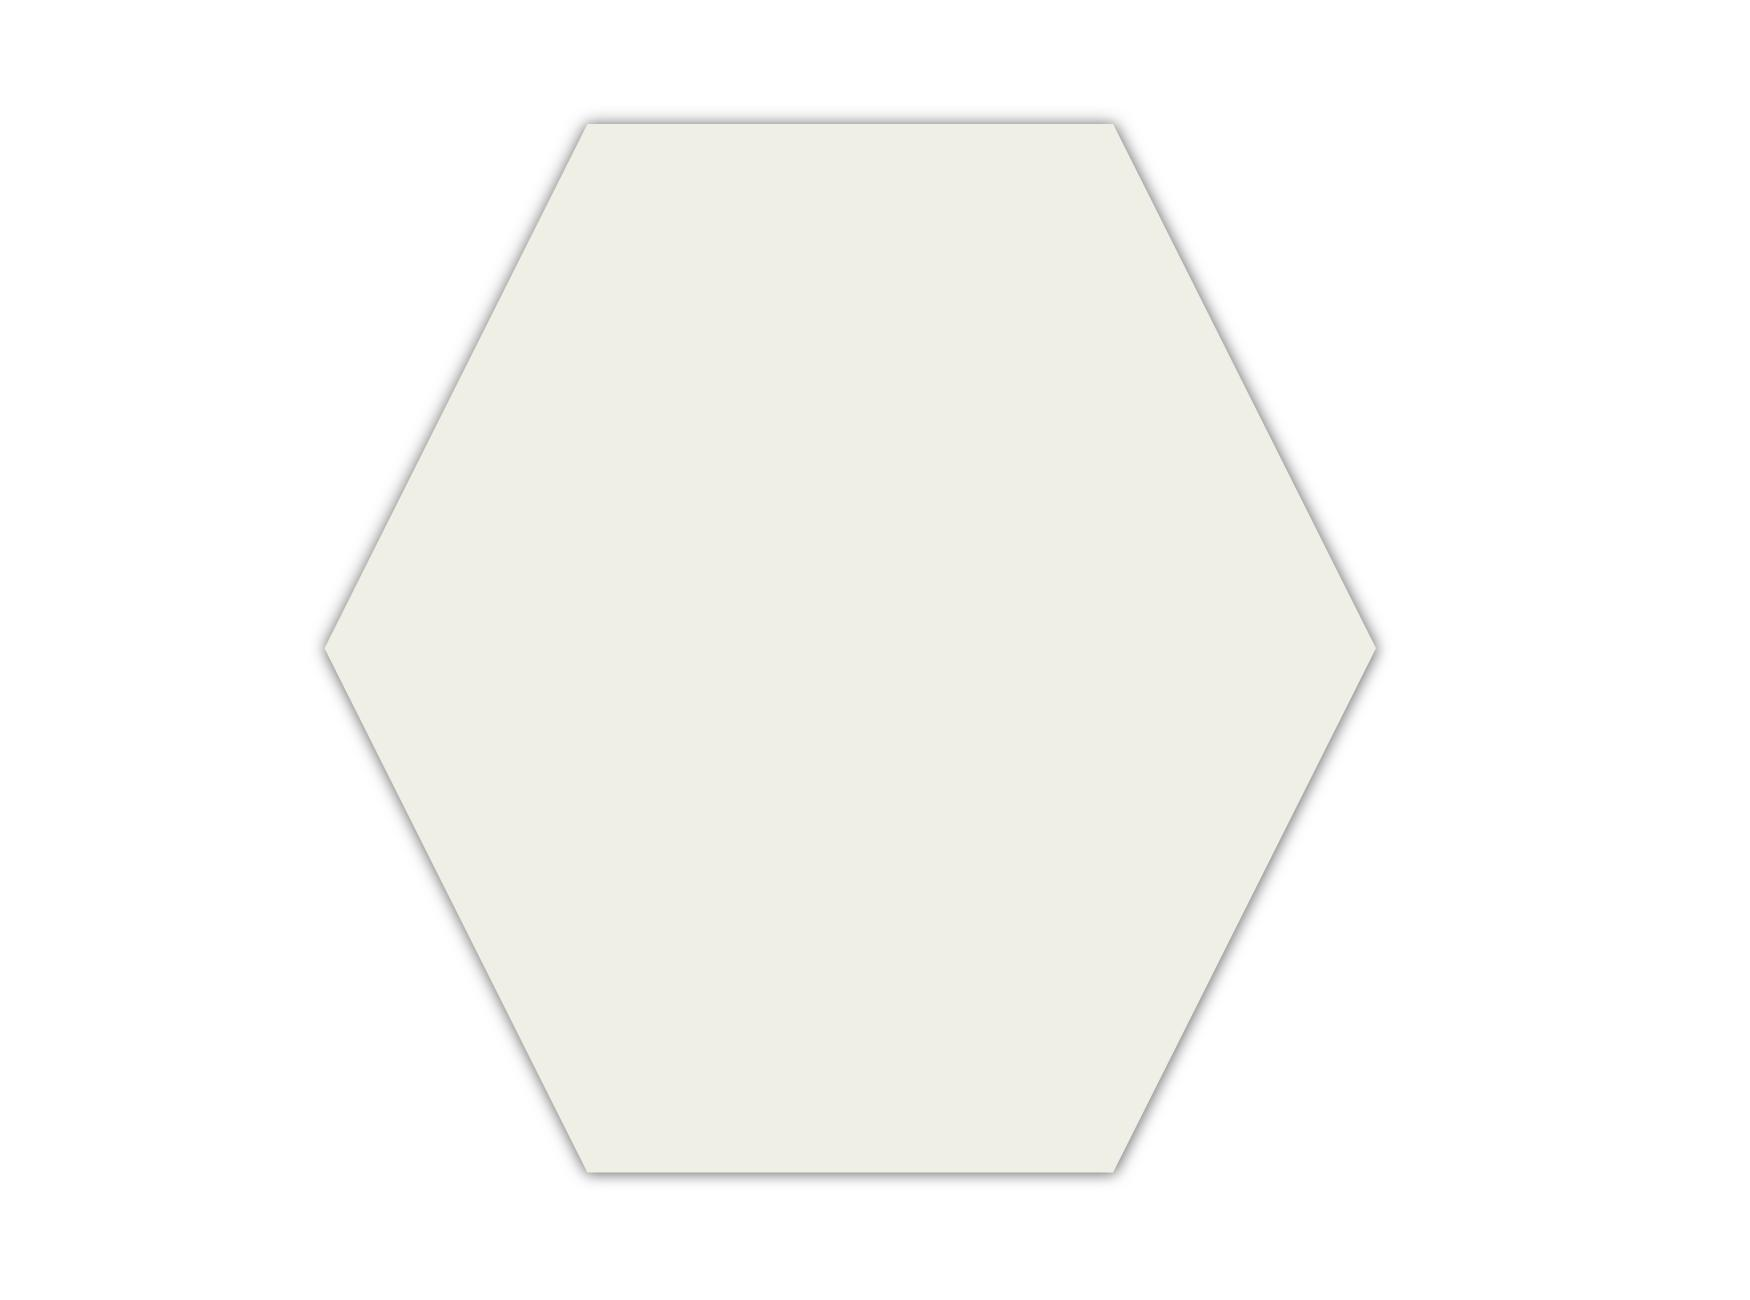 PowerSun Hexagon 500 Watt 86x86cm